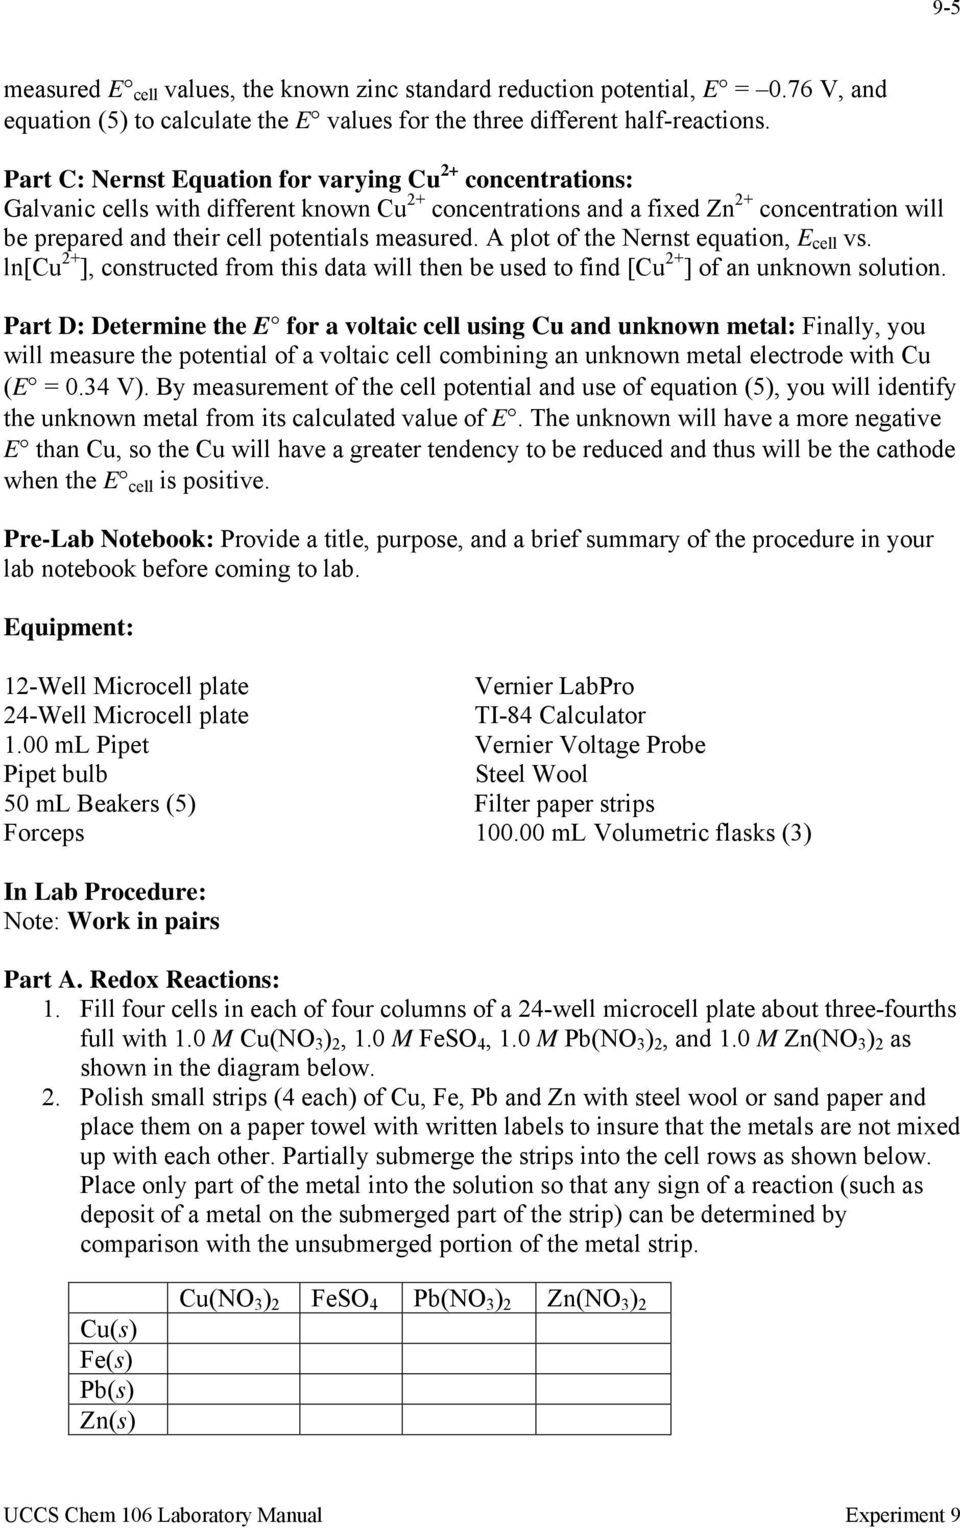 voltaic cell lab report